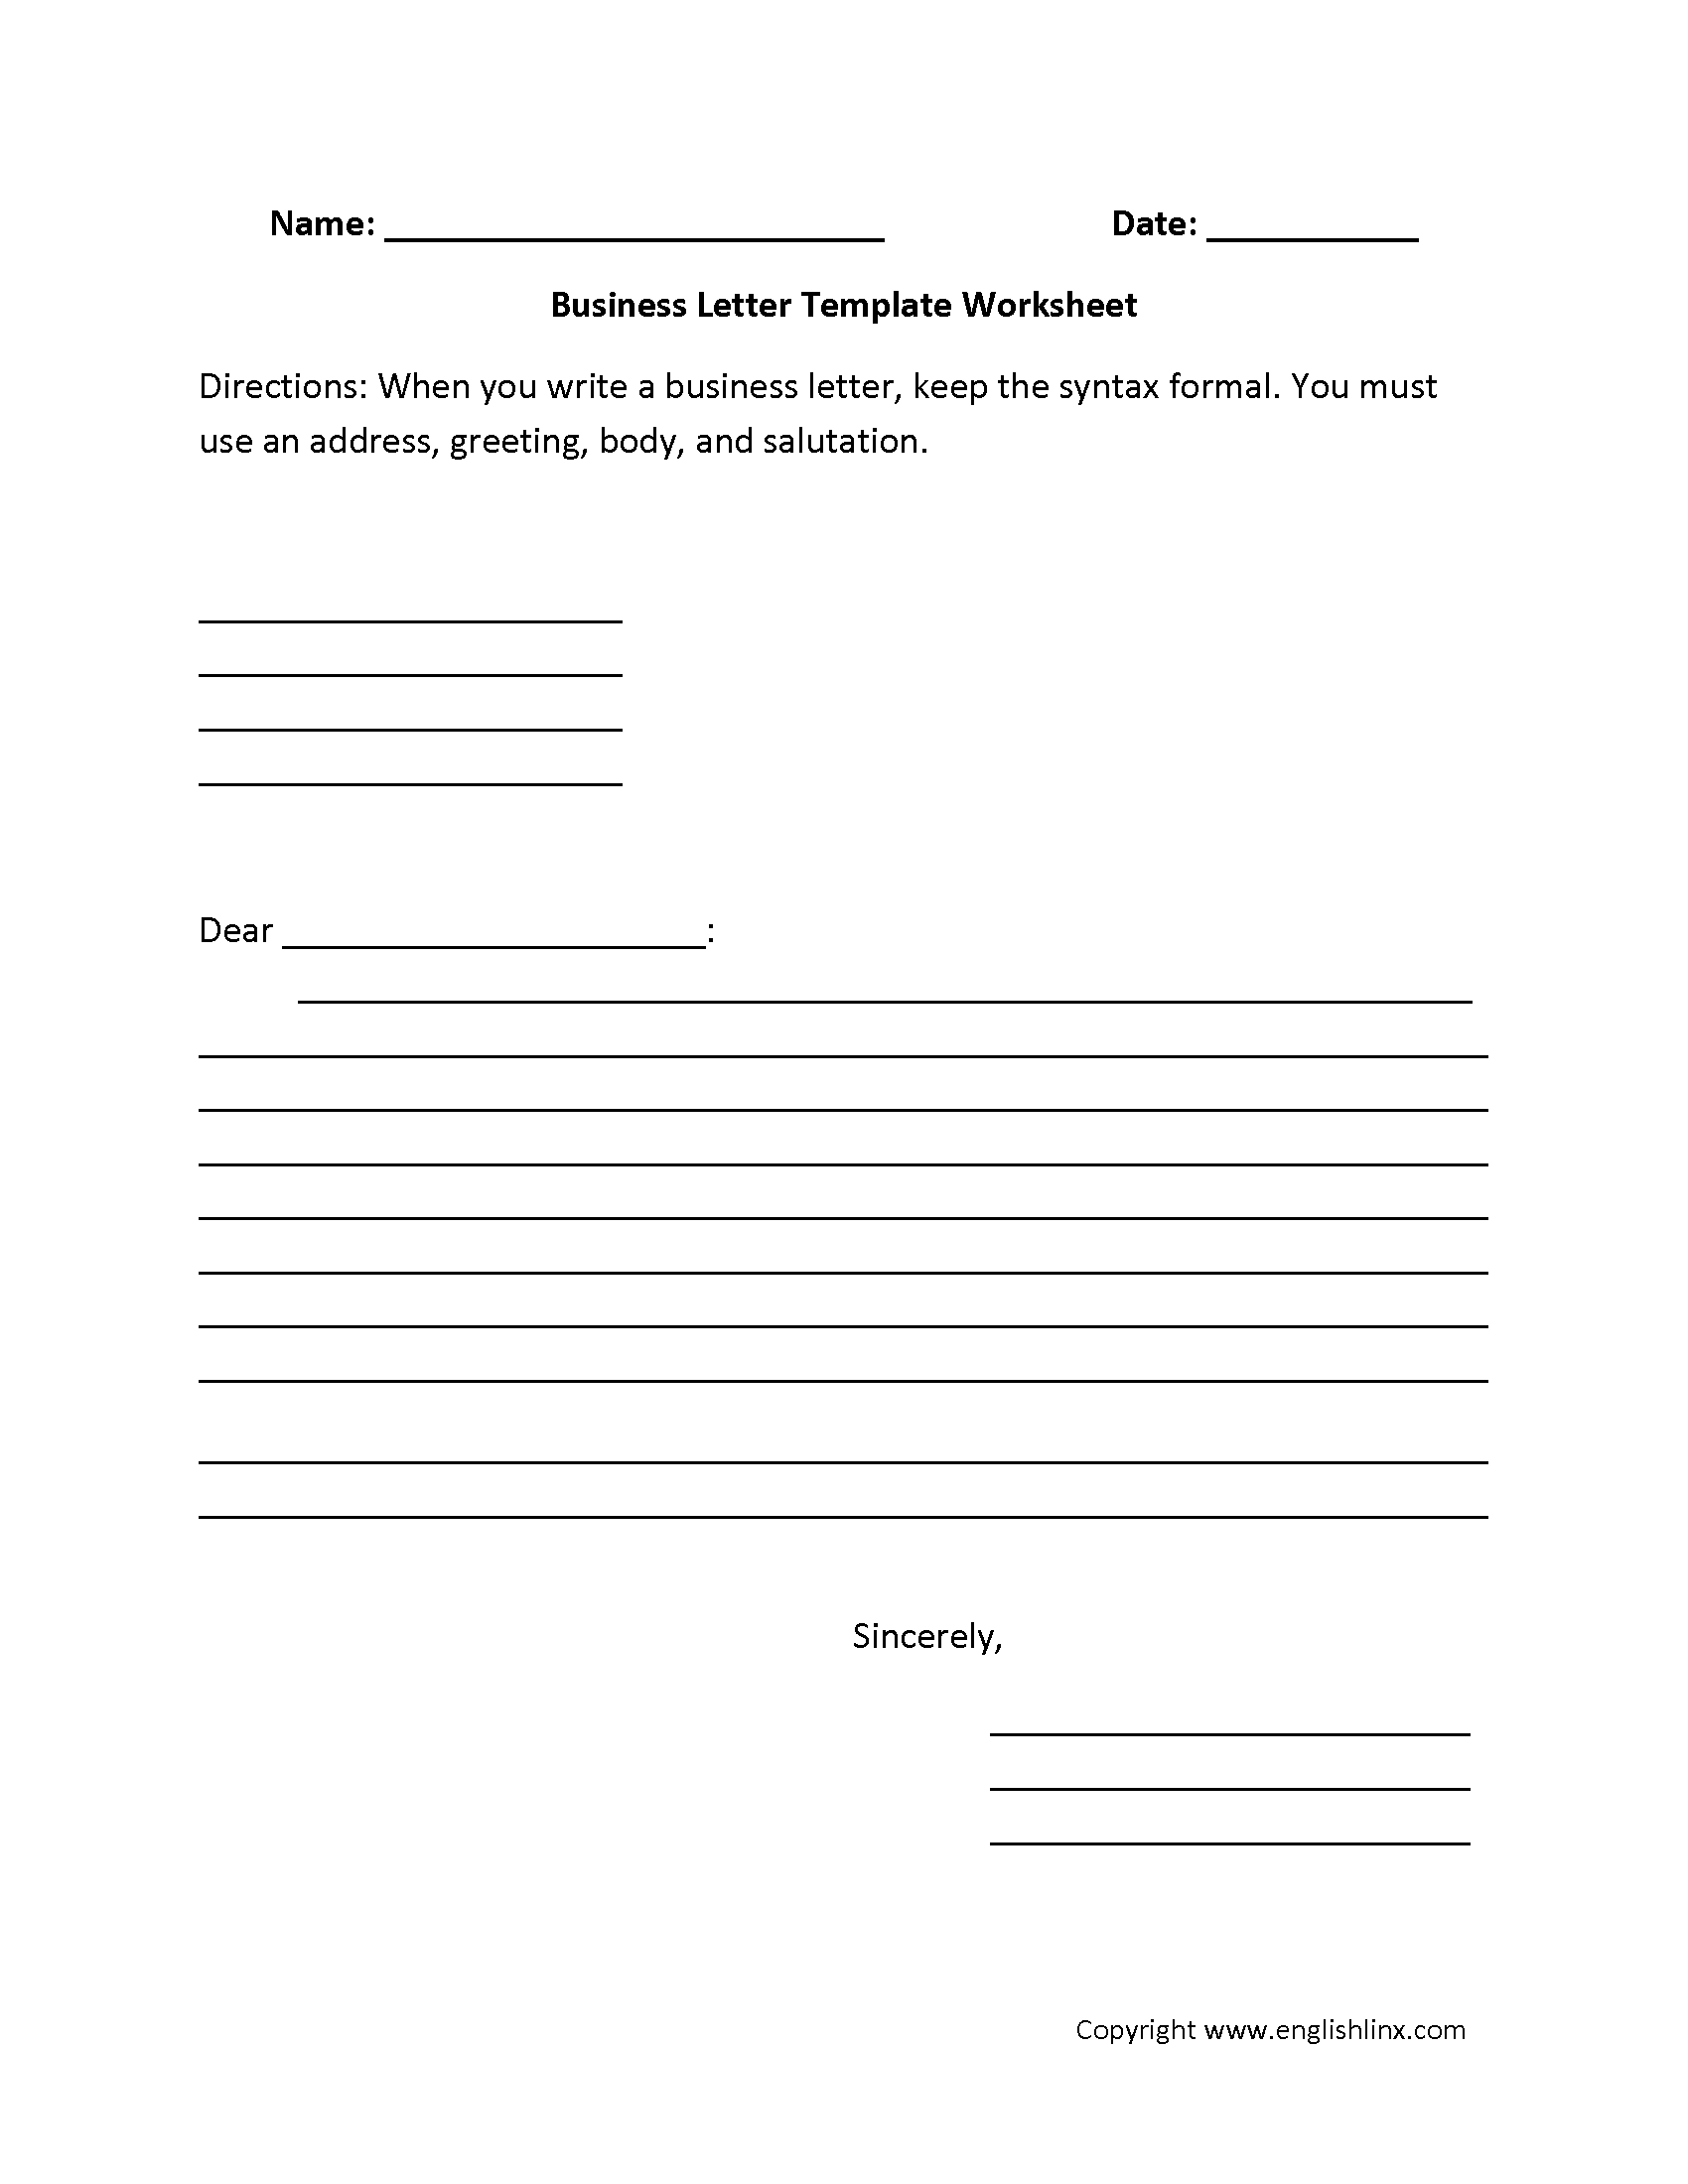 Worksheets 5th Grade Handwriting Worksheets writing worksheets letter worksheets